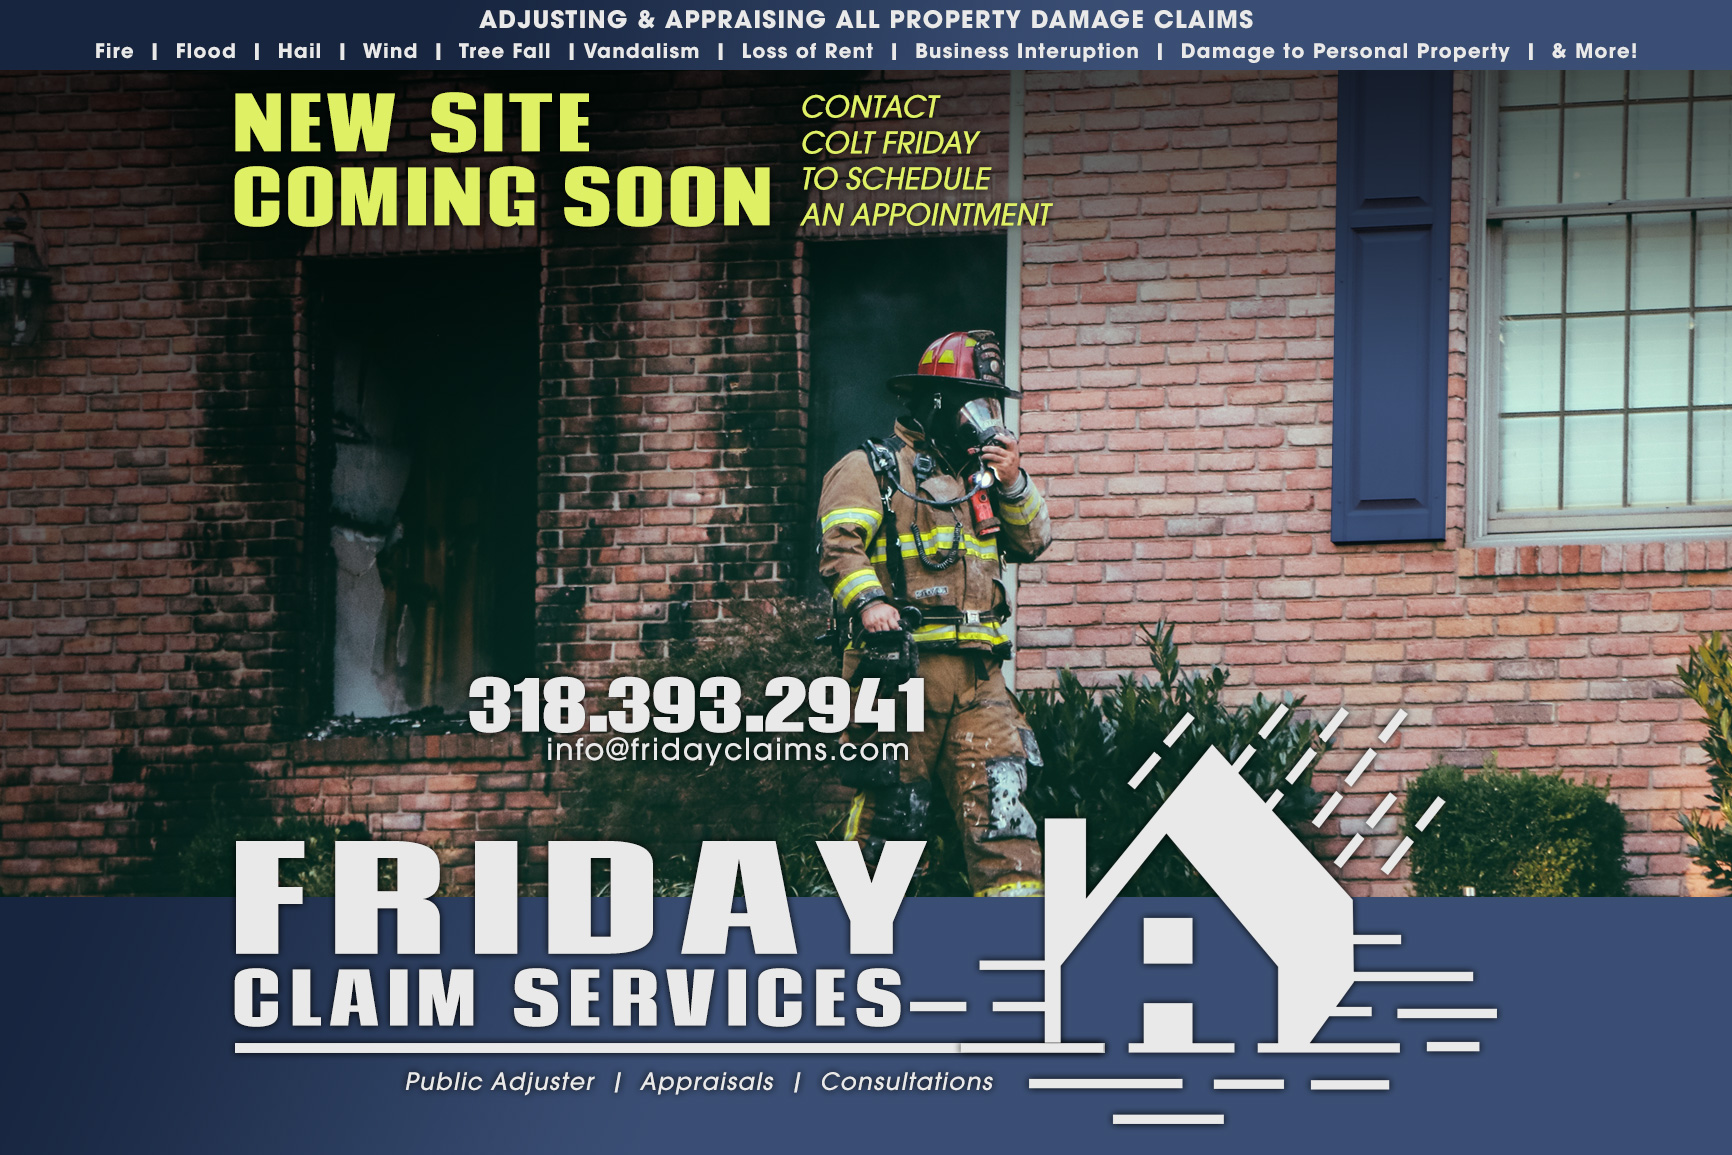 Friday Claims Services